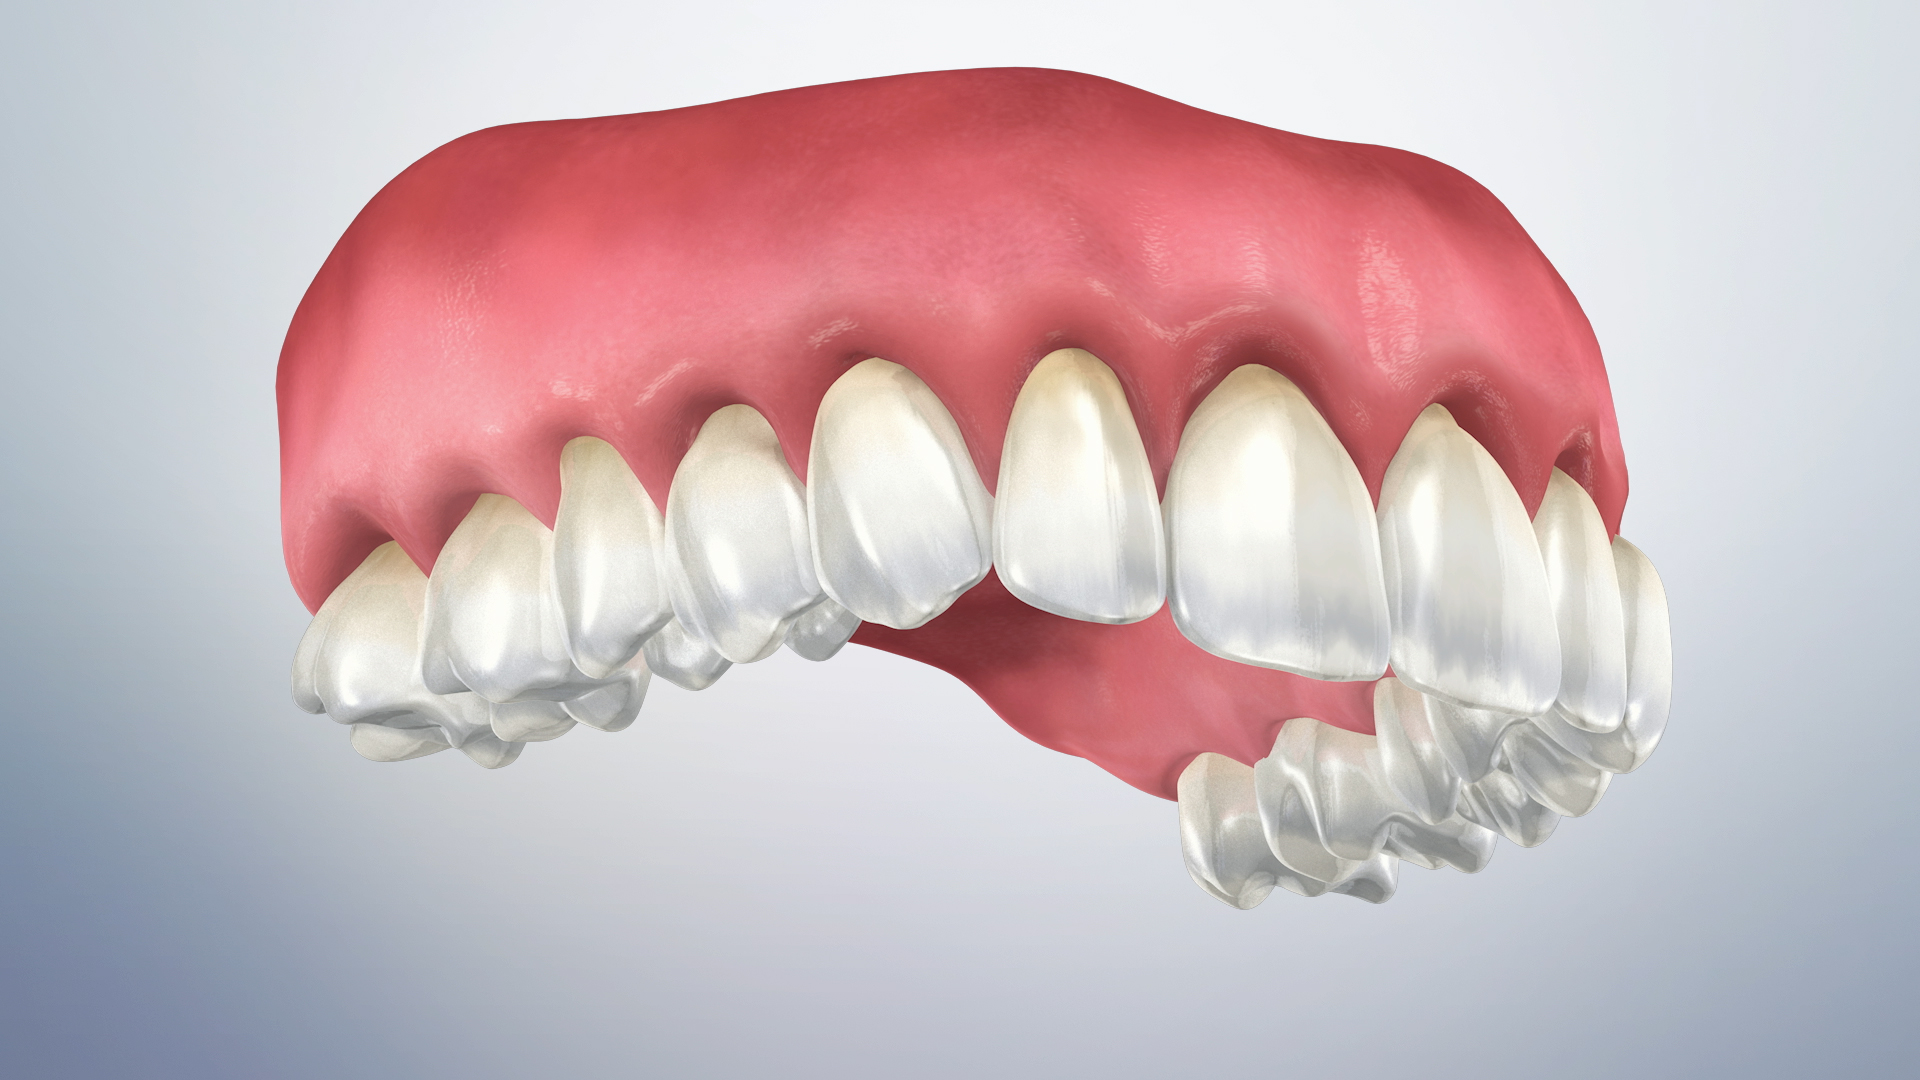 Thumbnail for a video on Gingival Recession